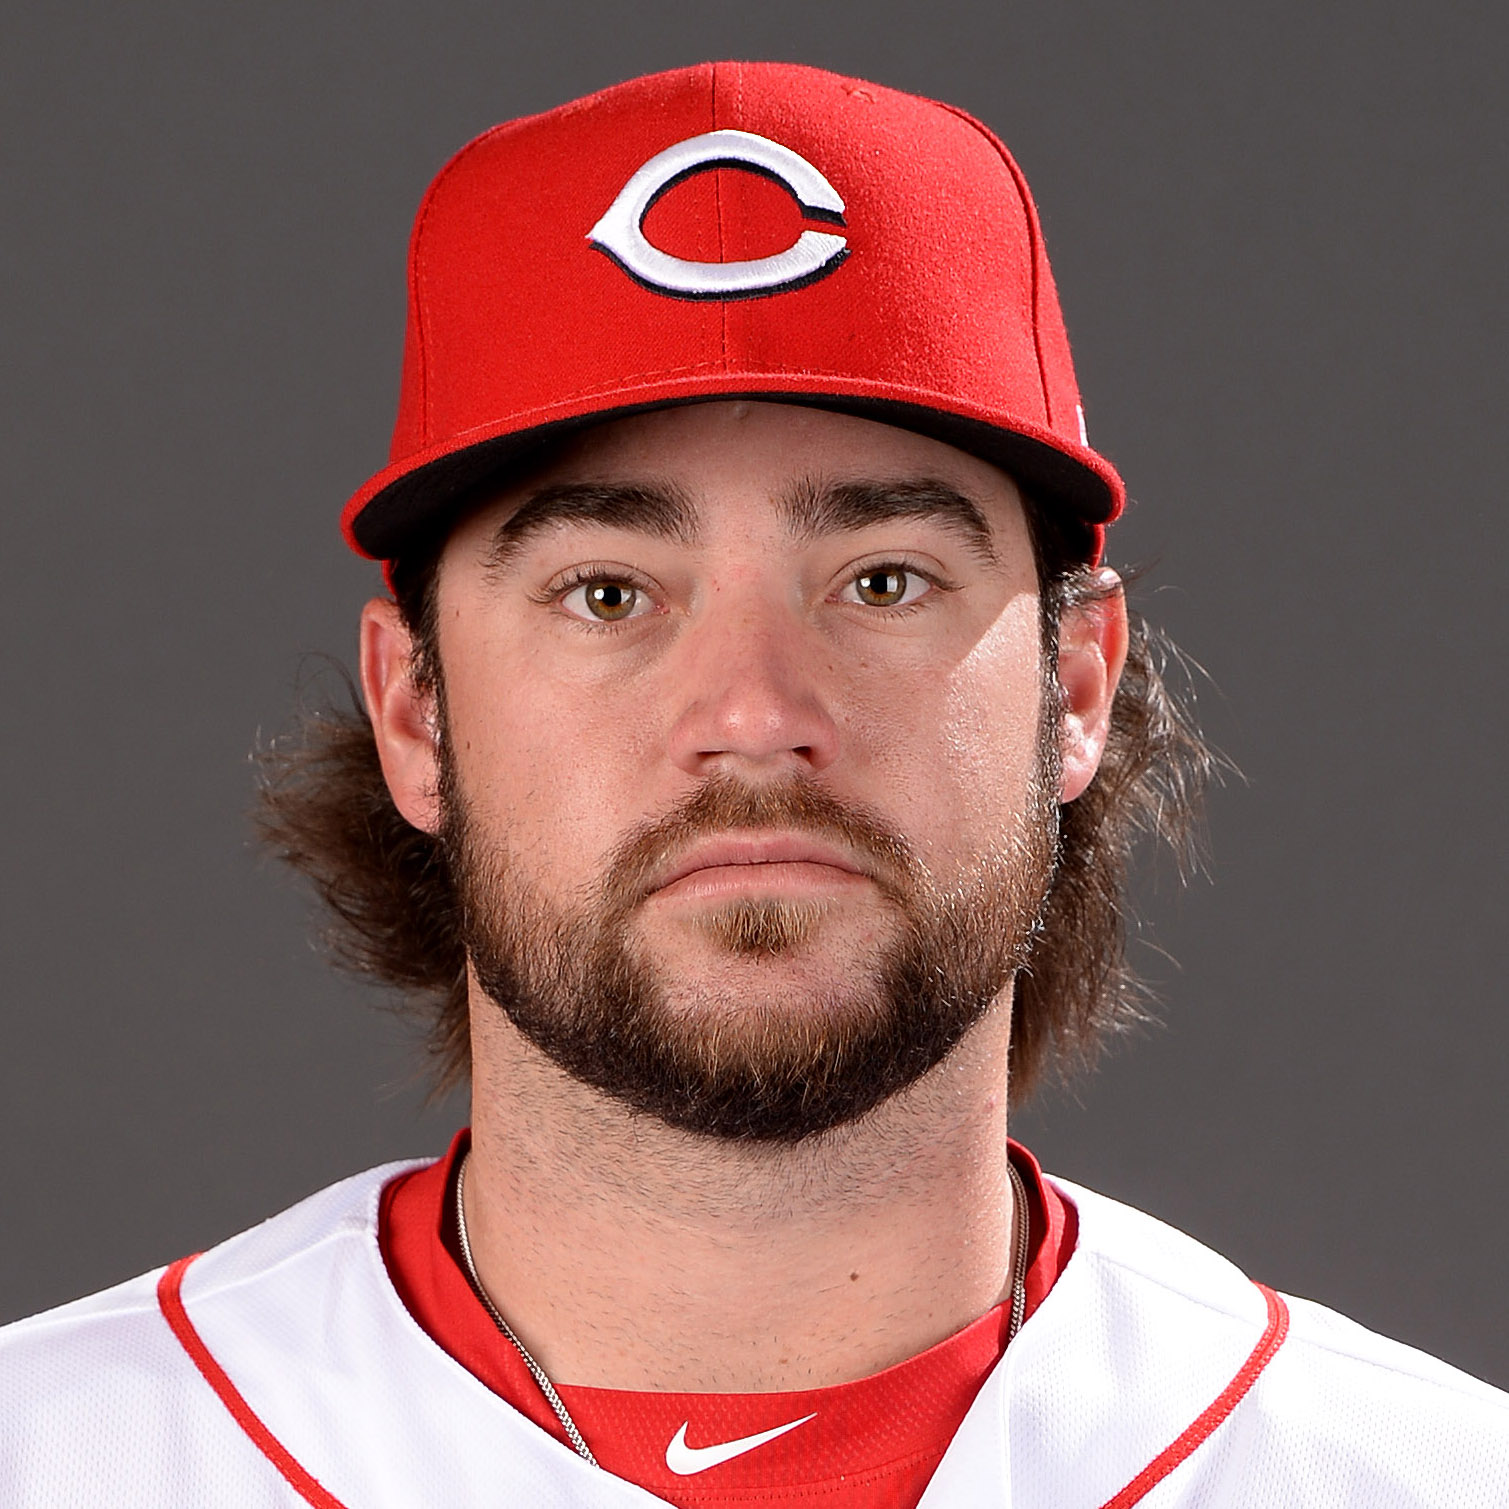 Brandon Finnegan (L) Headshot